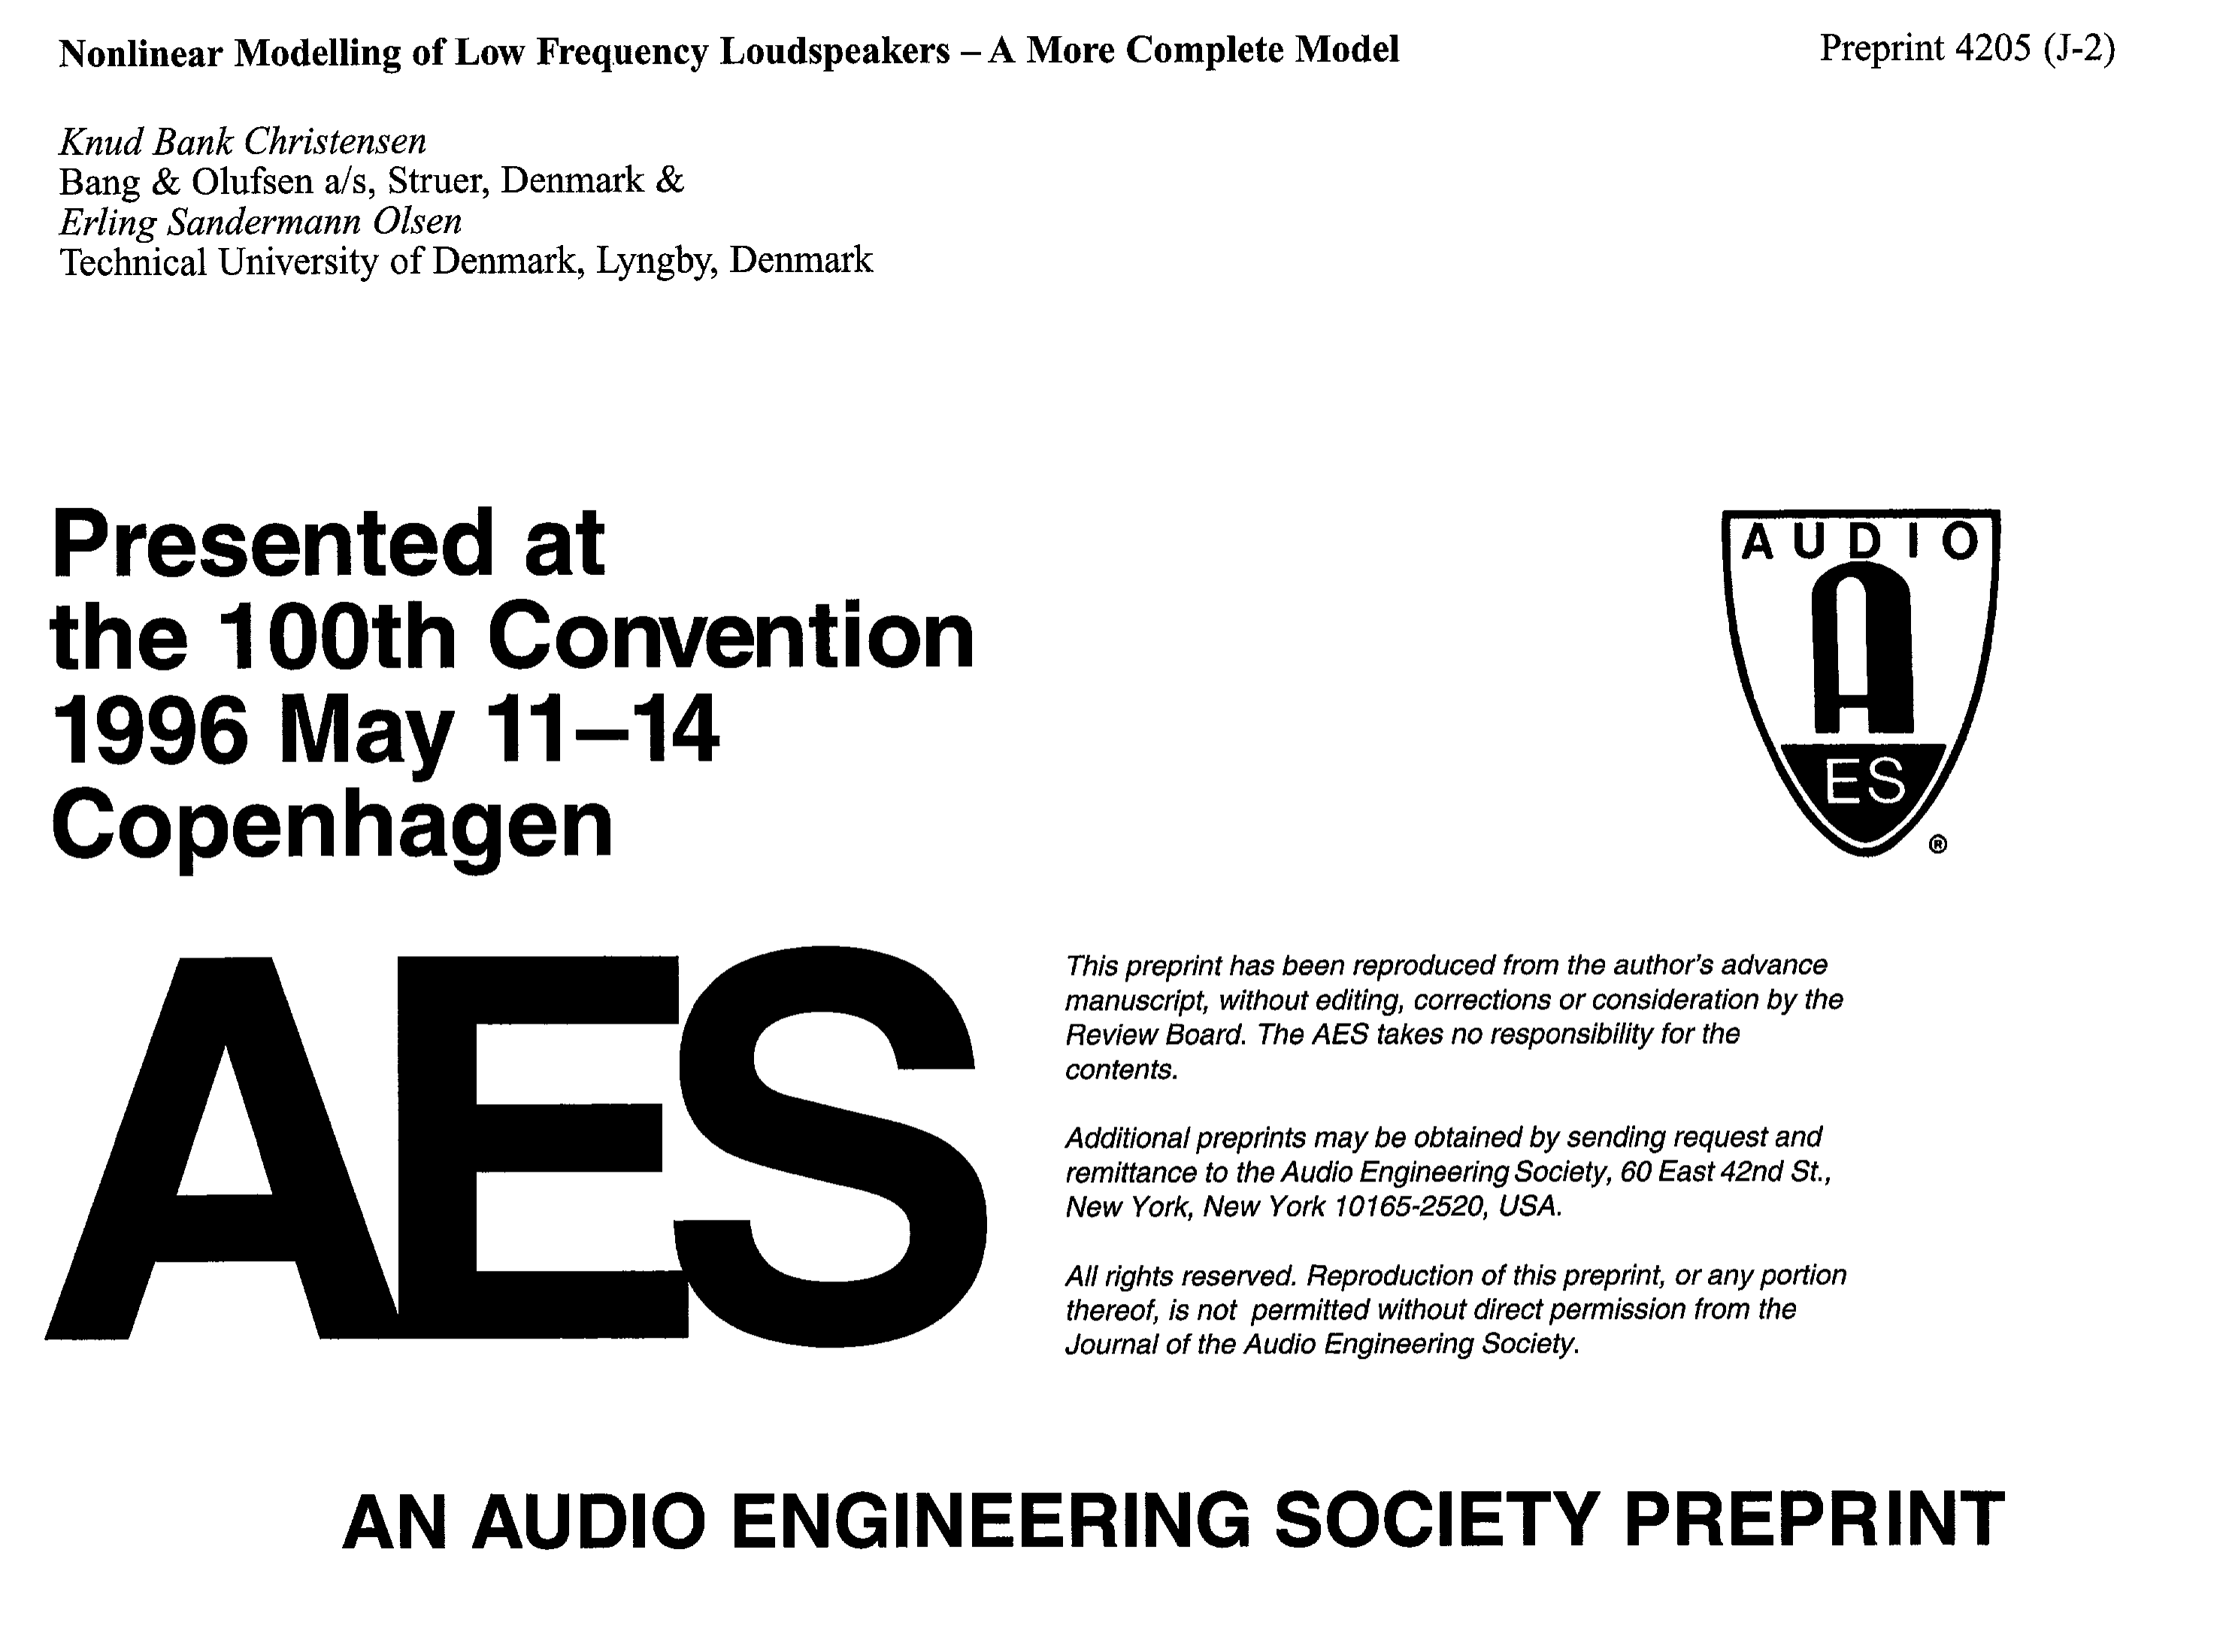 Aes E Library Nonlinear Modeling Of Low Frequency Loudspeakers A Subwoofer Filter Crossover 11 90 Hz Circuit Free Picture More Complete Model